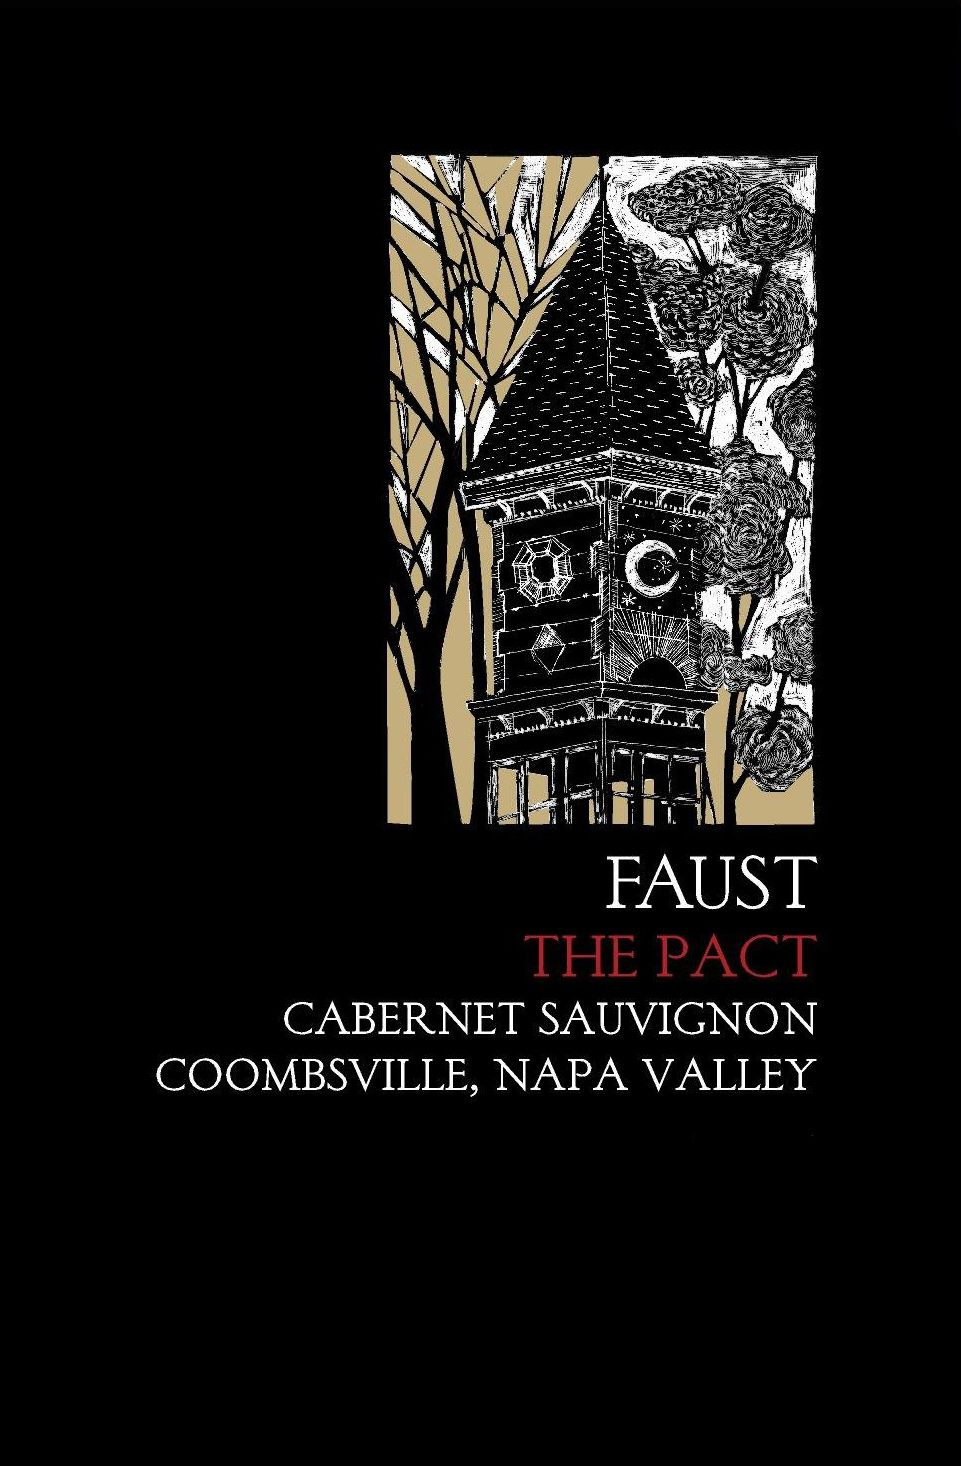 Faust The Pact 2016  Front Label